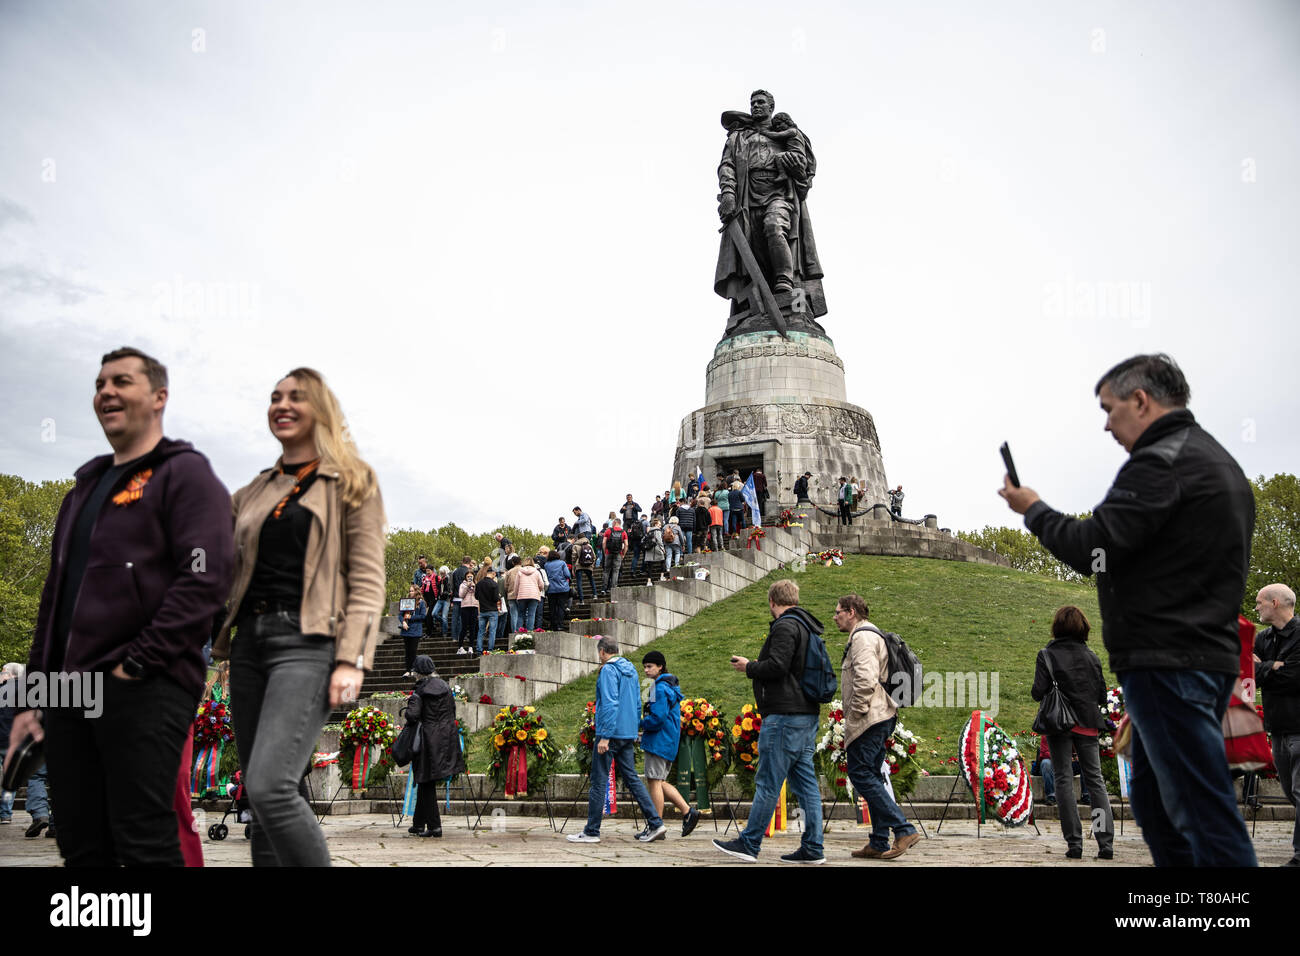 Berlin, Germany. 9th May, 2019. People commemorate Victory Day at the Soviet War Memorial in Treptower Park in Berlin, on May 9, 2019 .Victory Day or VE-Day (Victory in Europe) is commemorated on May 9 in Russia other former Soviet Union countries. The day marks the unconditional surrender of the German Army, and with it the end of the European campaign of the Second World War. Credit: Omer Messinger/ZUMA Wire/Alamy Live News Stock Photo